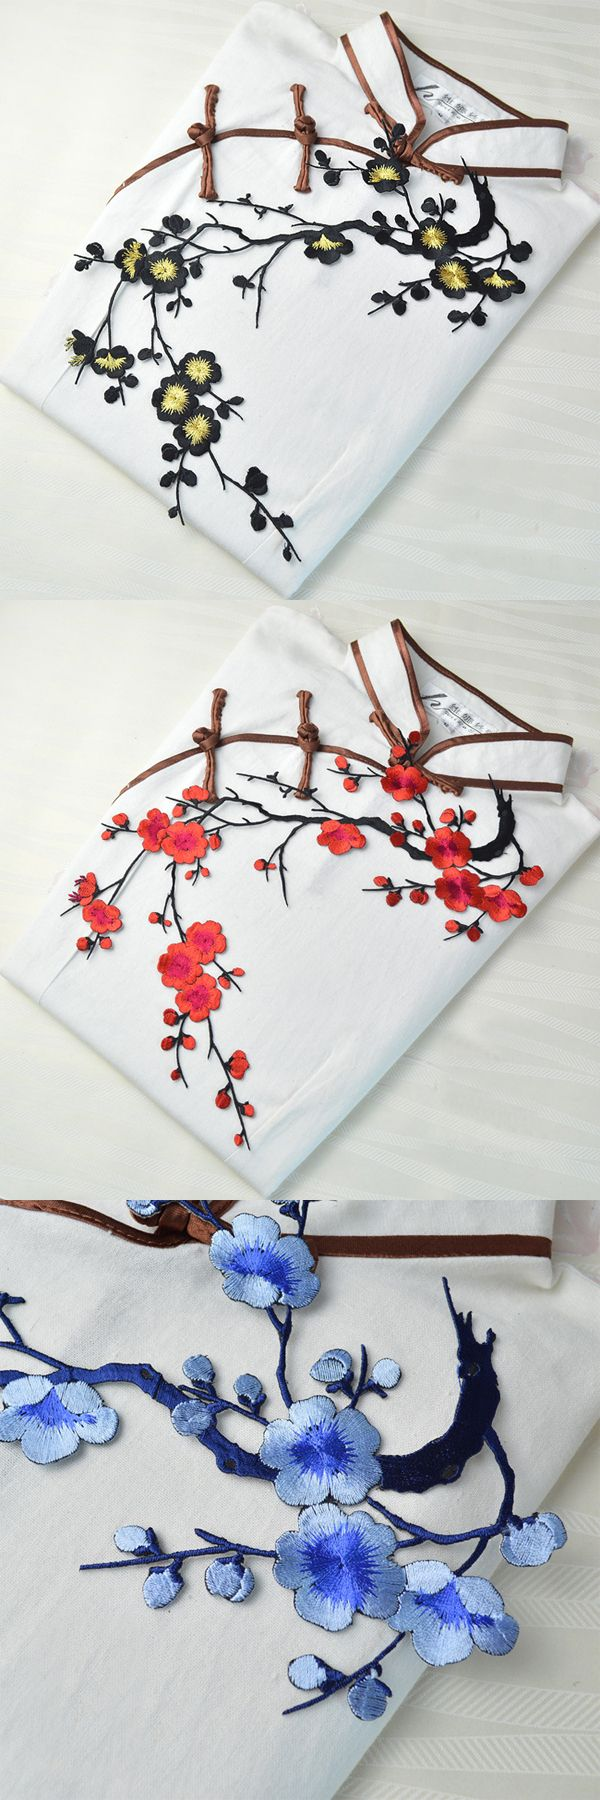 US$1.89+Free Shipping. Brand new and high quality. A beautiful plum flower clothing embroidery with bright colors. let your clothes and fabric add highlights. There is hot melt adhesive on the back, easy to use, just Ironing with Iron or sewing it.